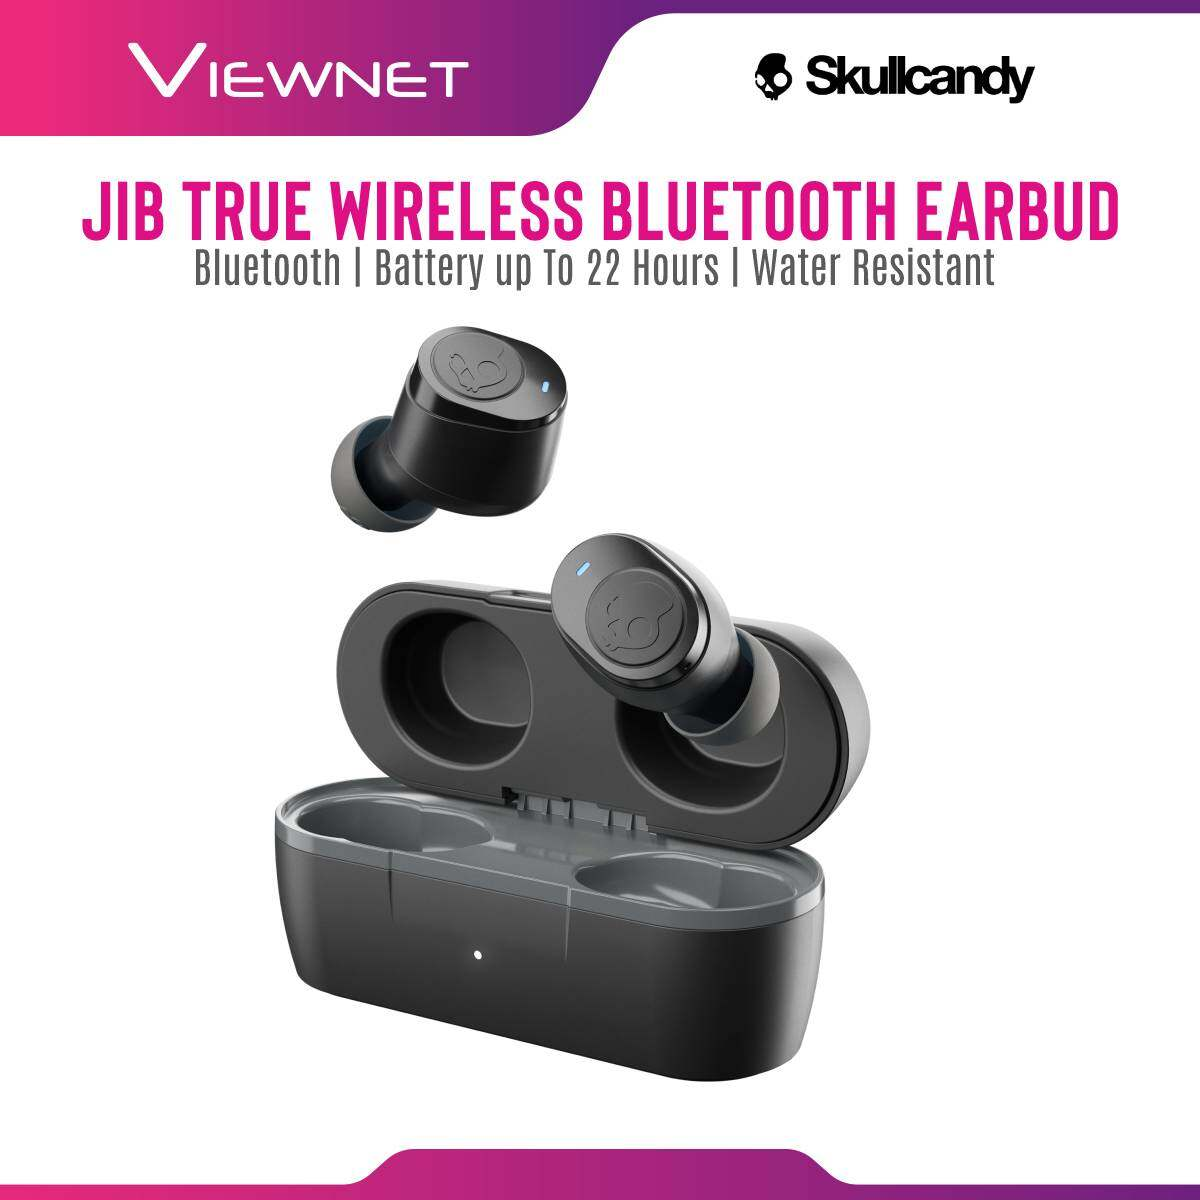 Skullcandy JIB Ture wireless Bluetooth with IPX4 Sweat and Water Resistant , 22 Hours Total Battery